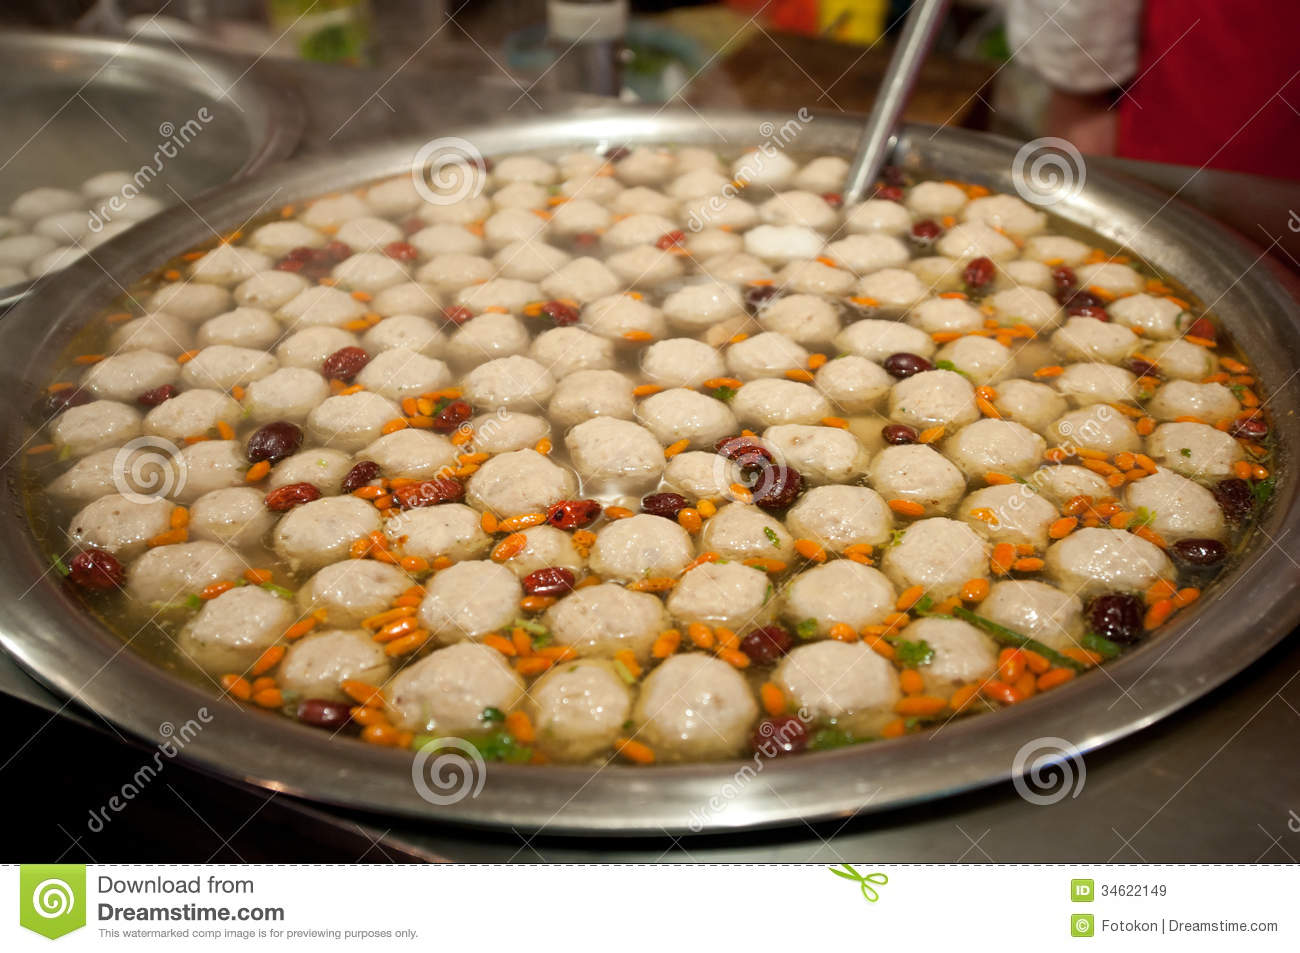 Chinese food royalty free stock images image 34622149 for Asia cuisine ulm